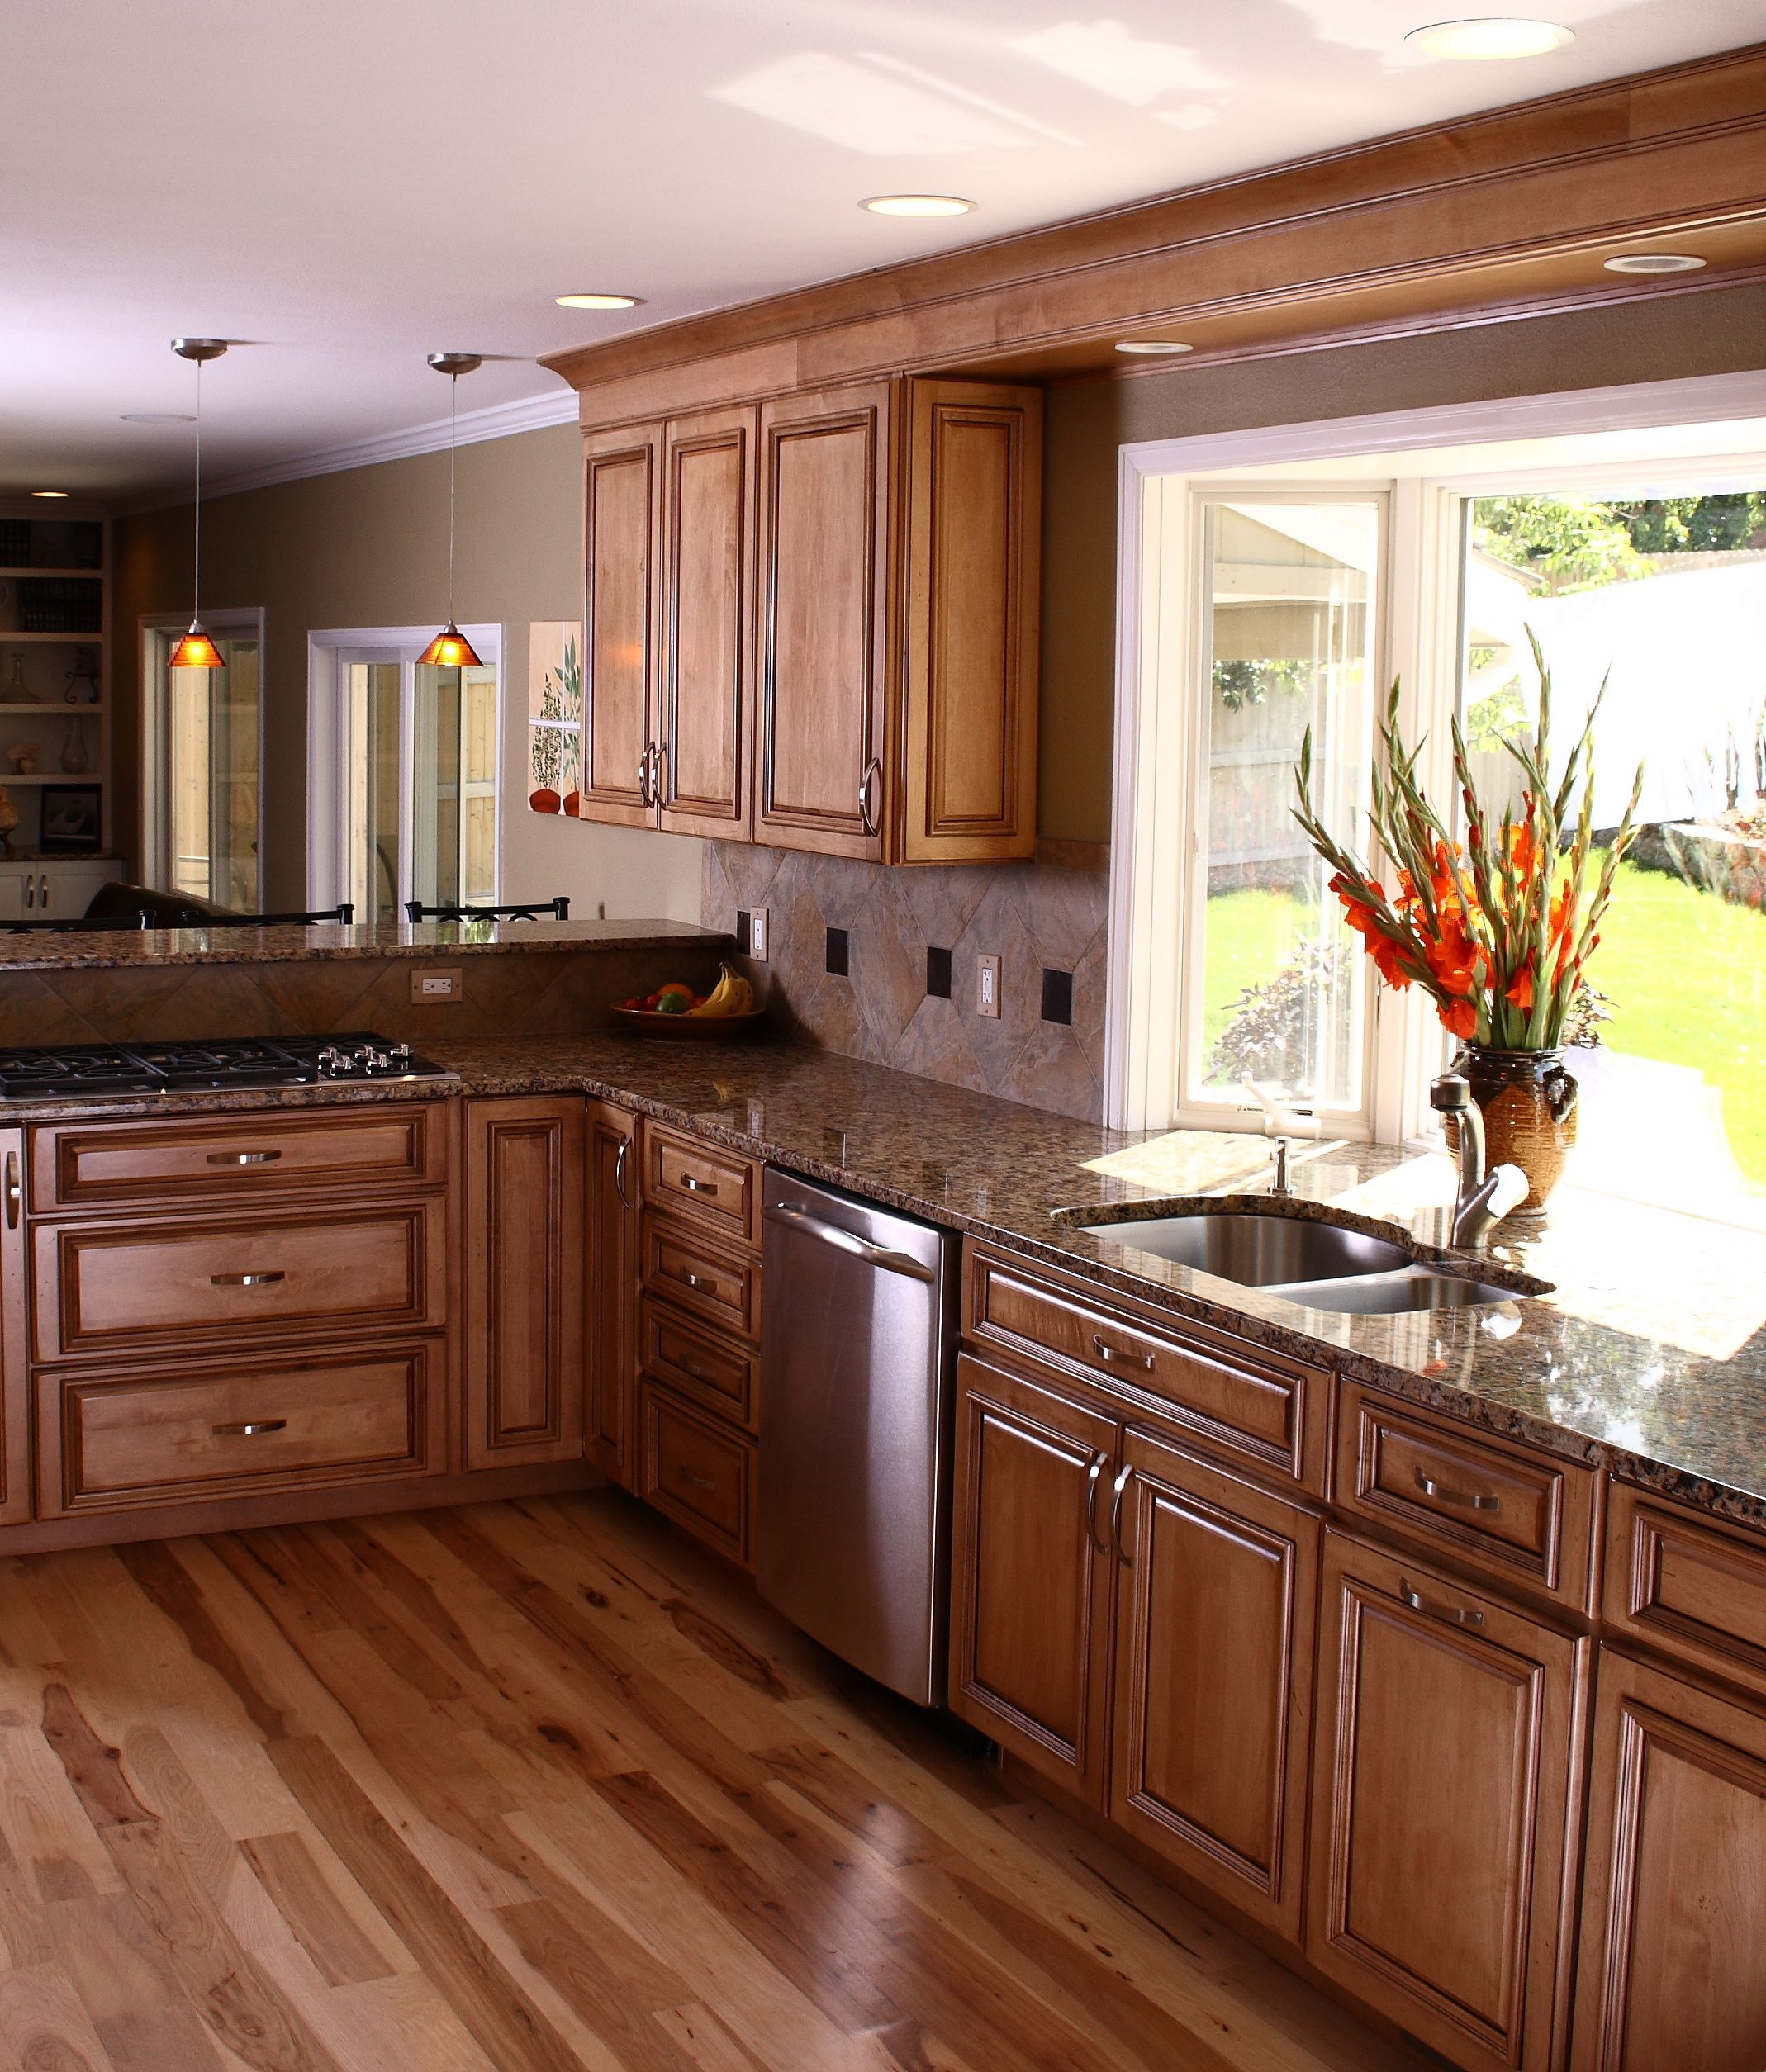 Kitchen Poplar Kitchen Remodel Beautiful Houses Interior Staining Cabinets